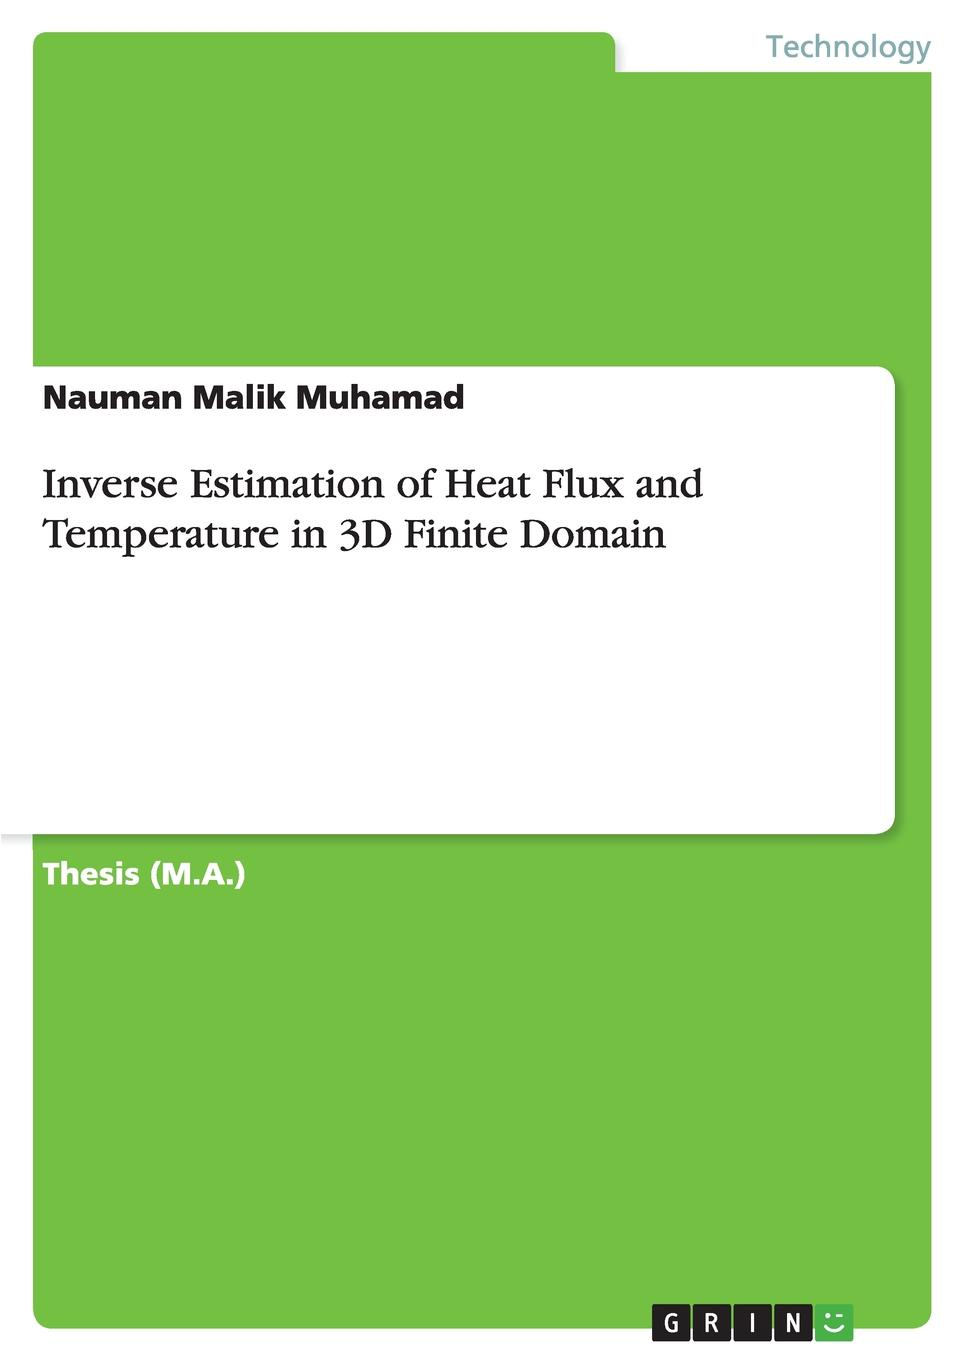 Nauman Malik Muhamad Inverse Estimation of Heat Flux and Temperature in 3D Finite Domain hdc he 032 2 heavy load connector 32 core 16a rectangle connector heat flux avenue plug